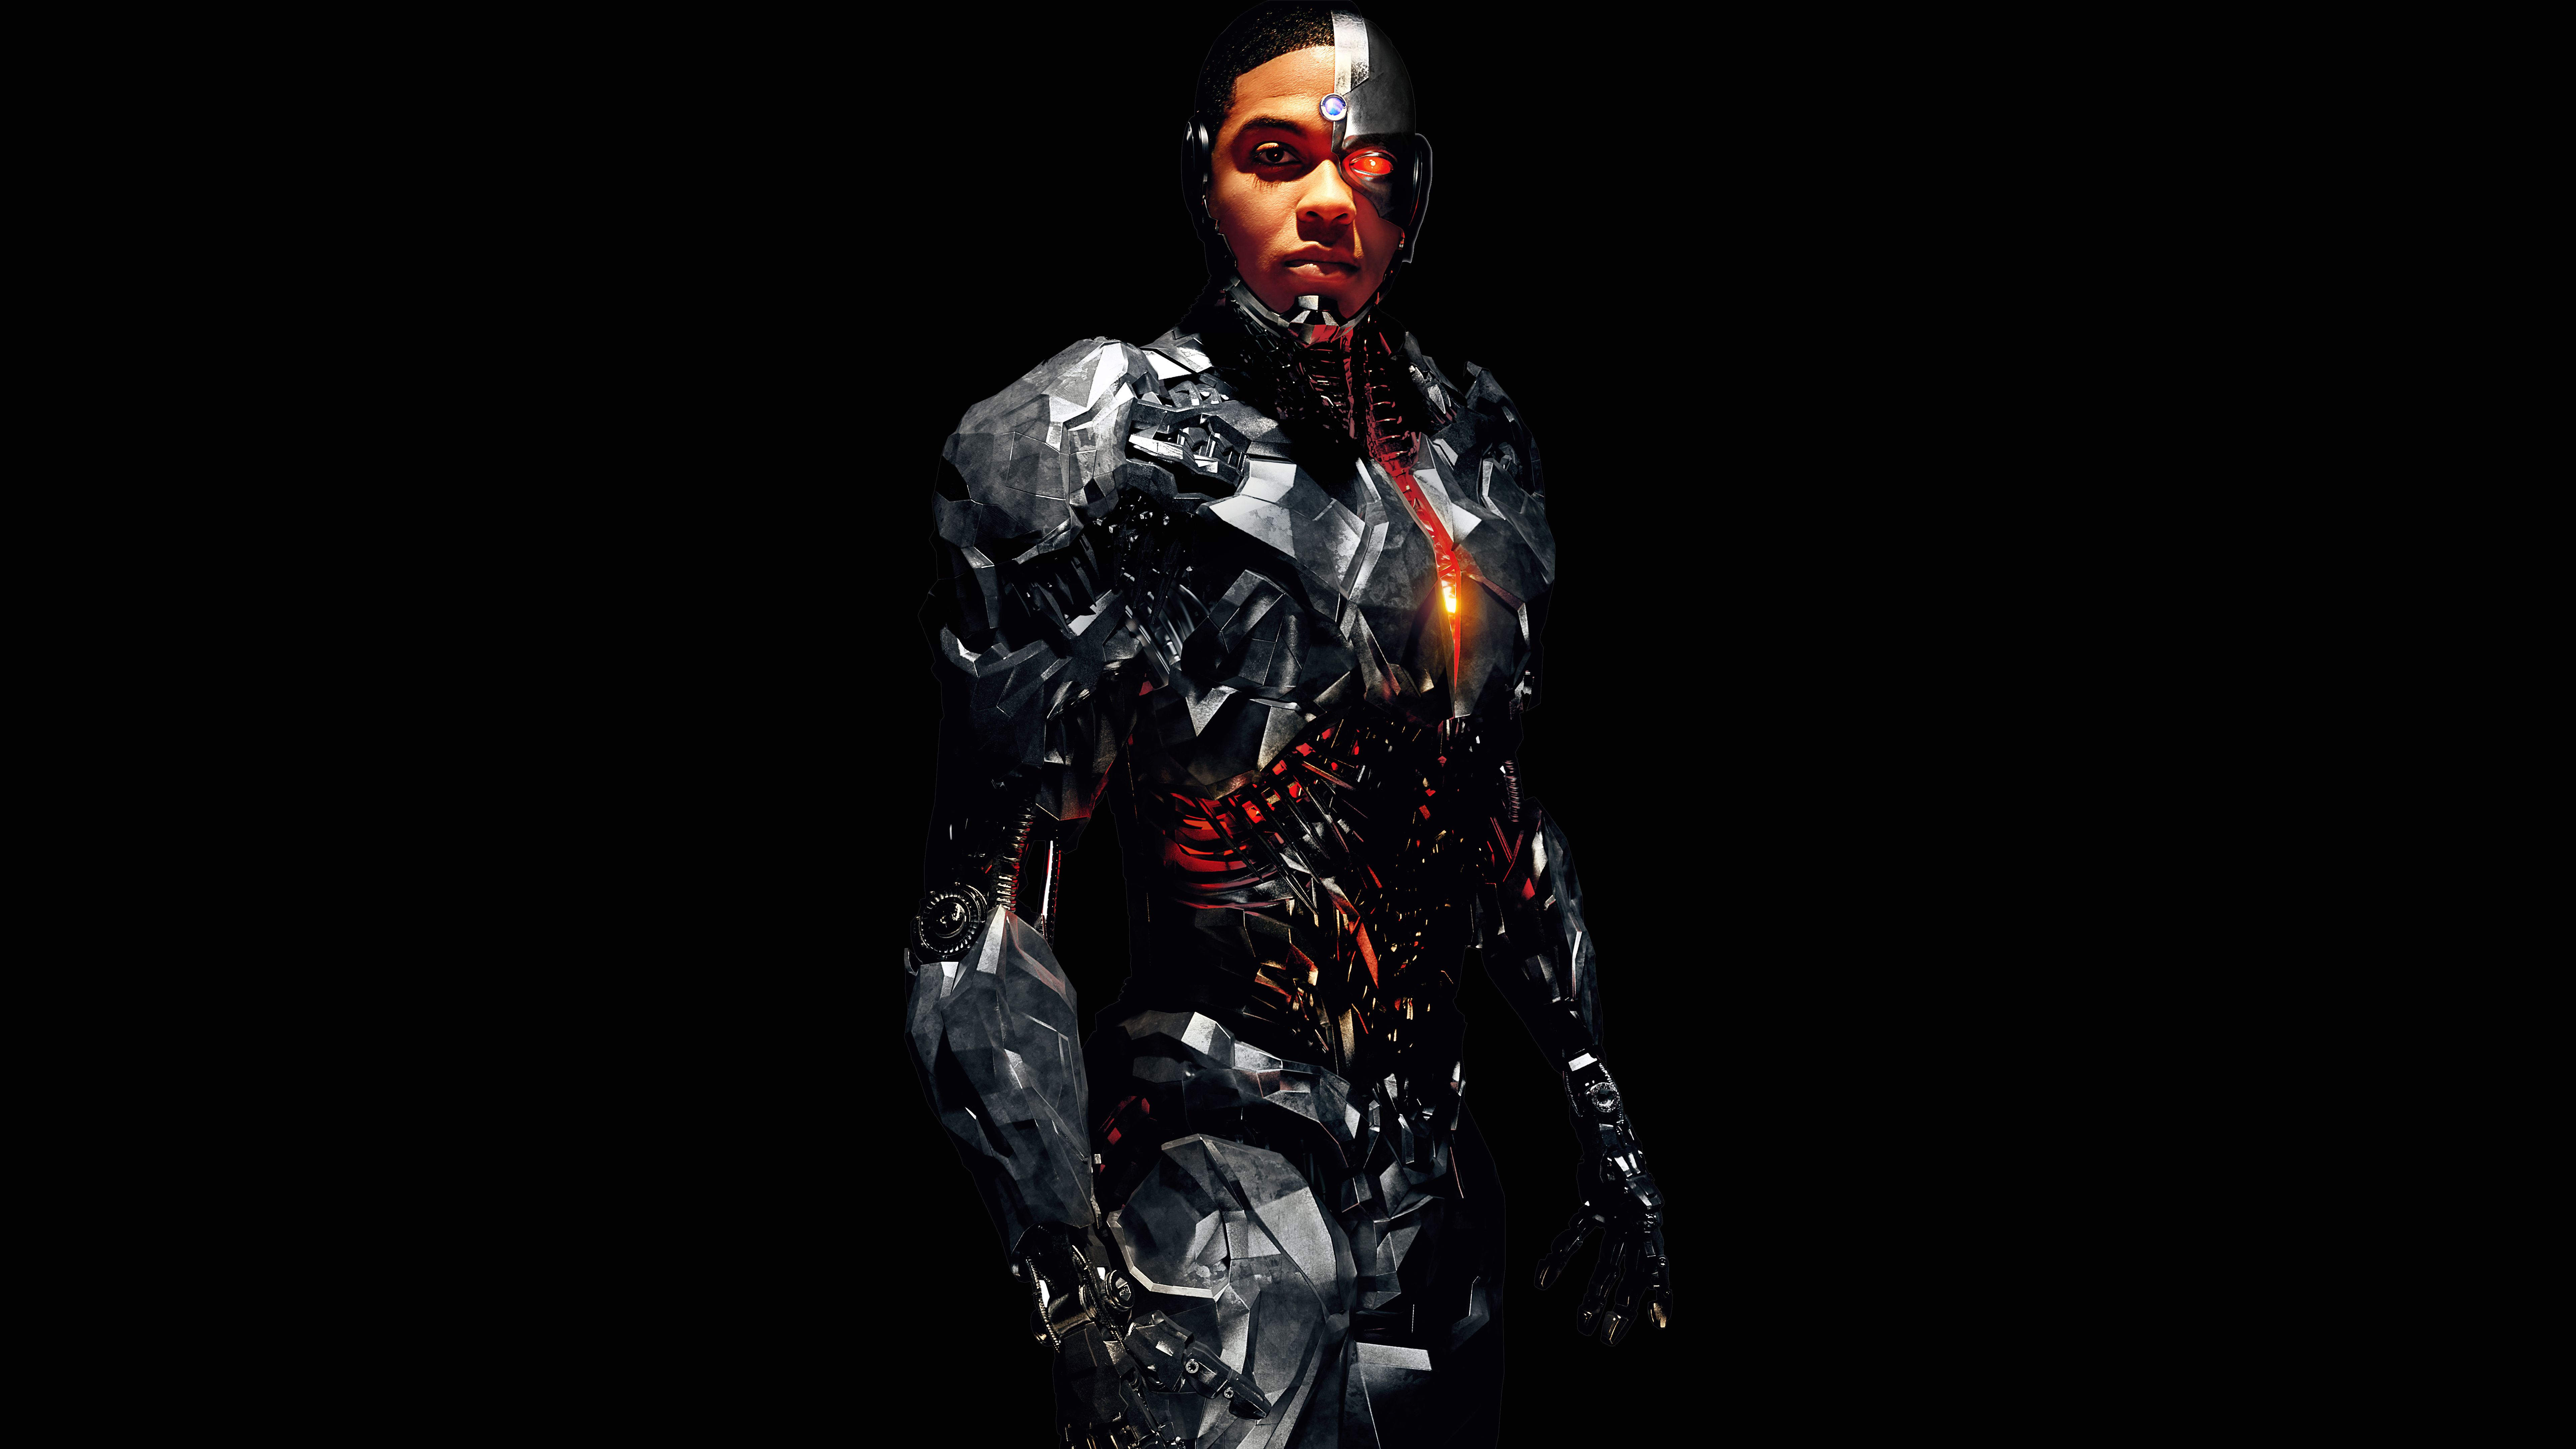 Justice League Cyborg Wallpapers Wallpaper Cave